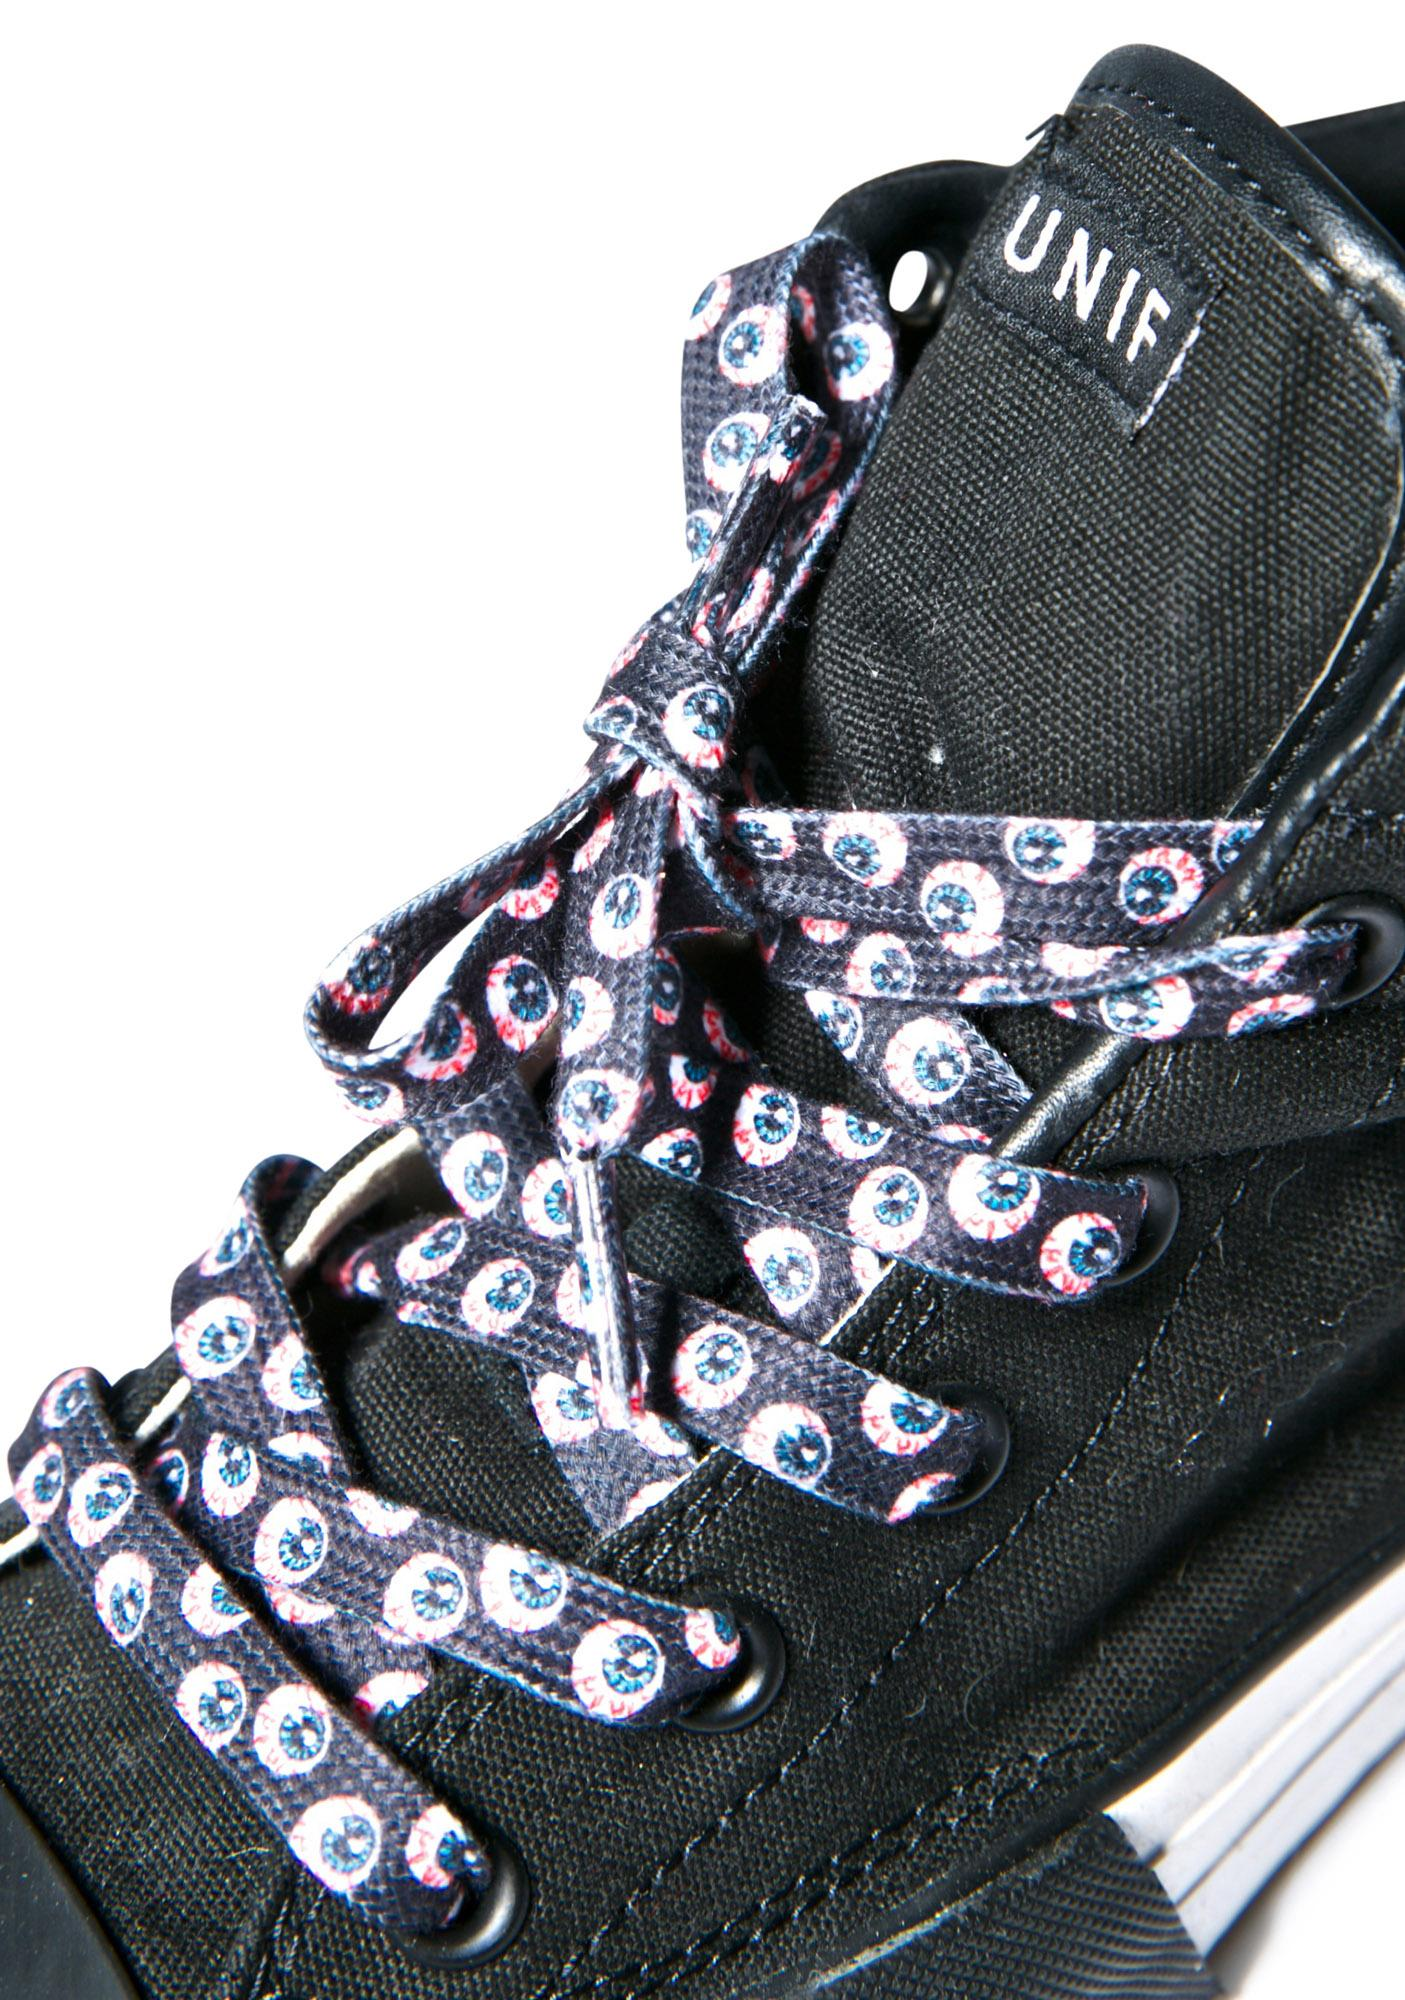 Eyein' U Up Shoe Laces